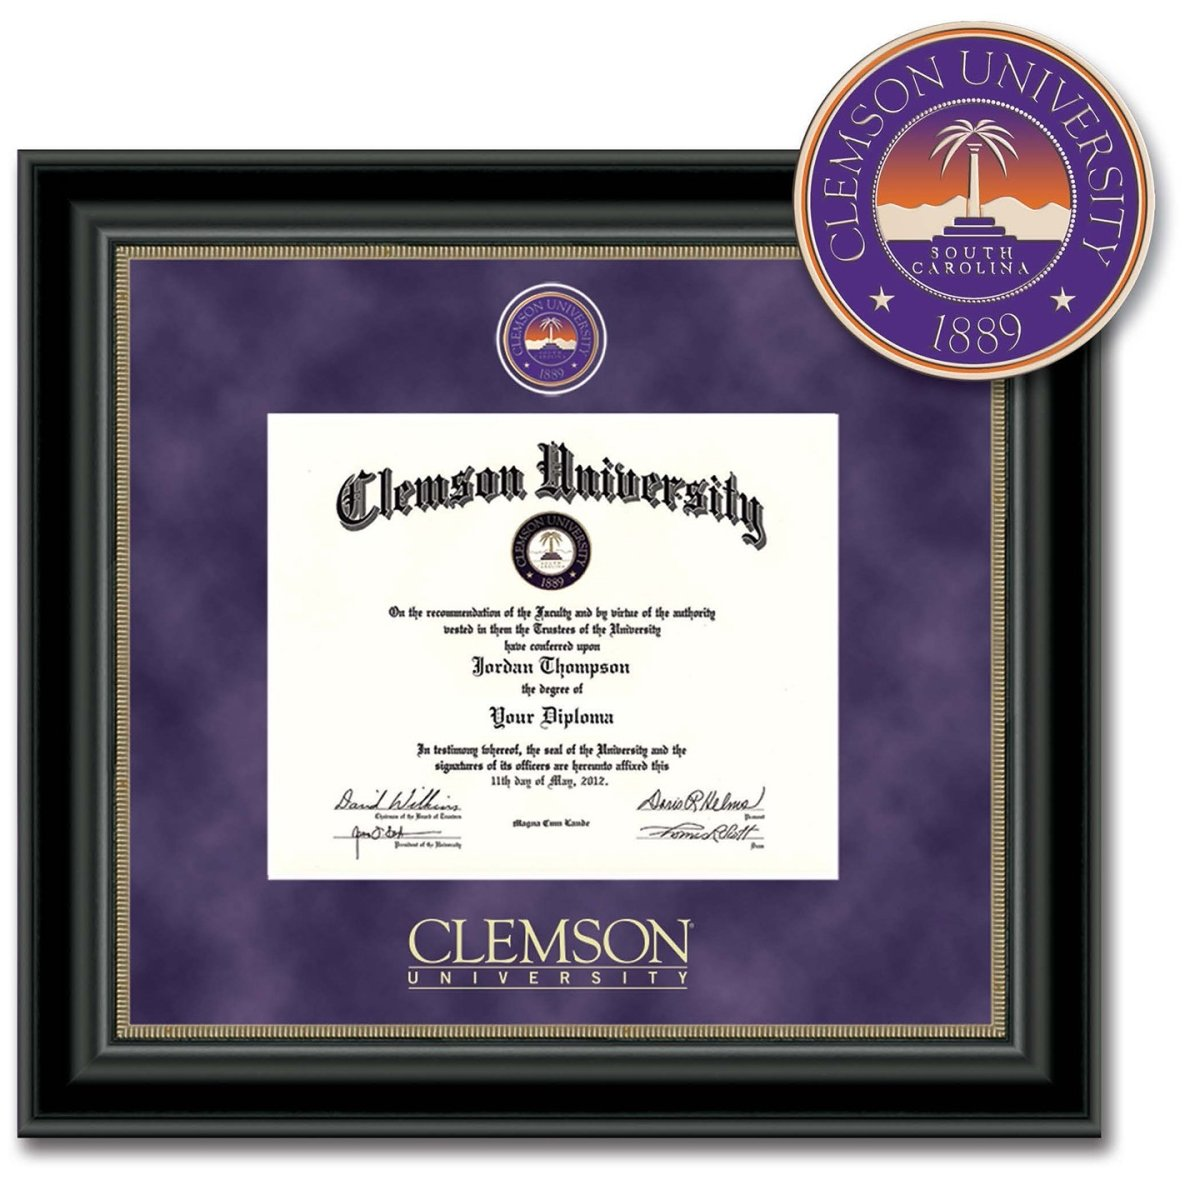 Clemson University Regal Masterpiece Diploma Frame - Mr. Knickerbocker